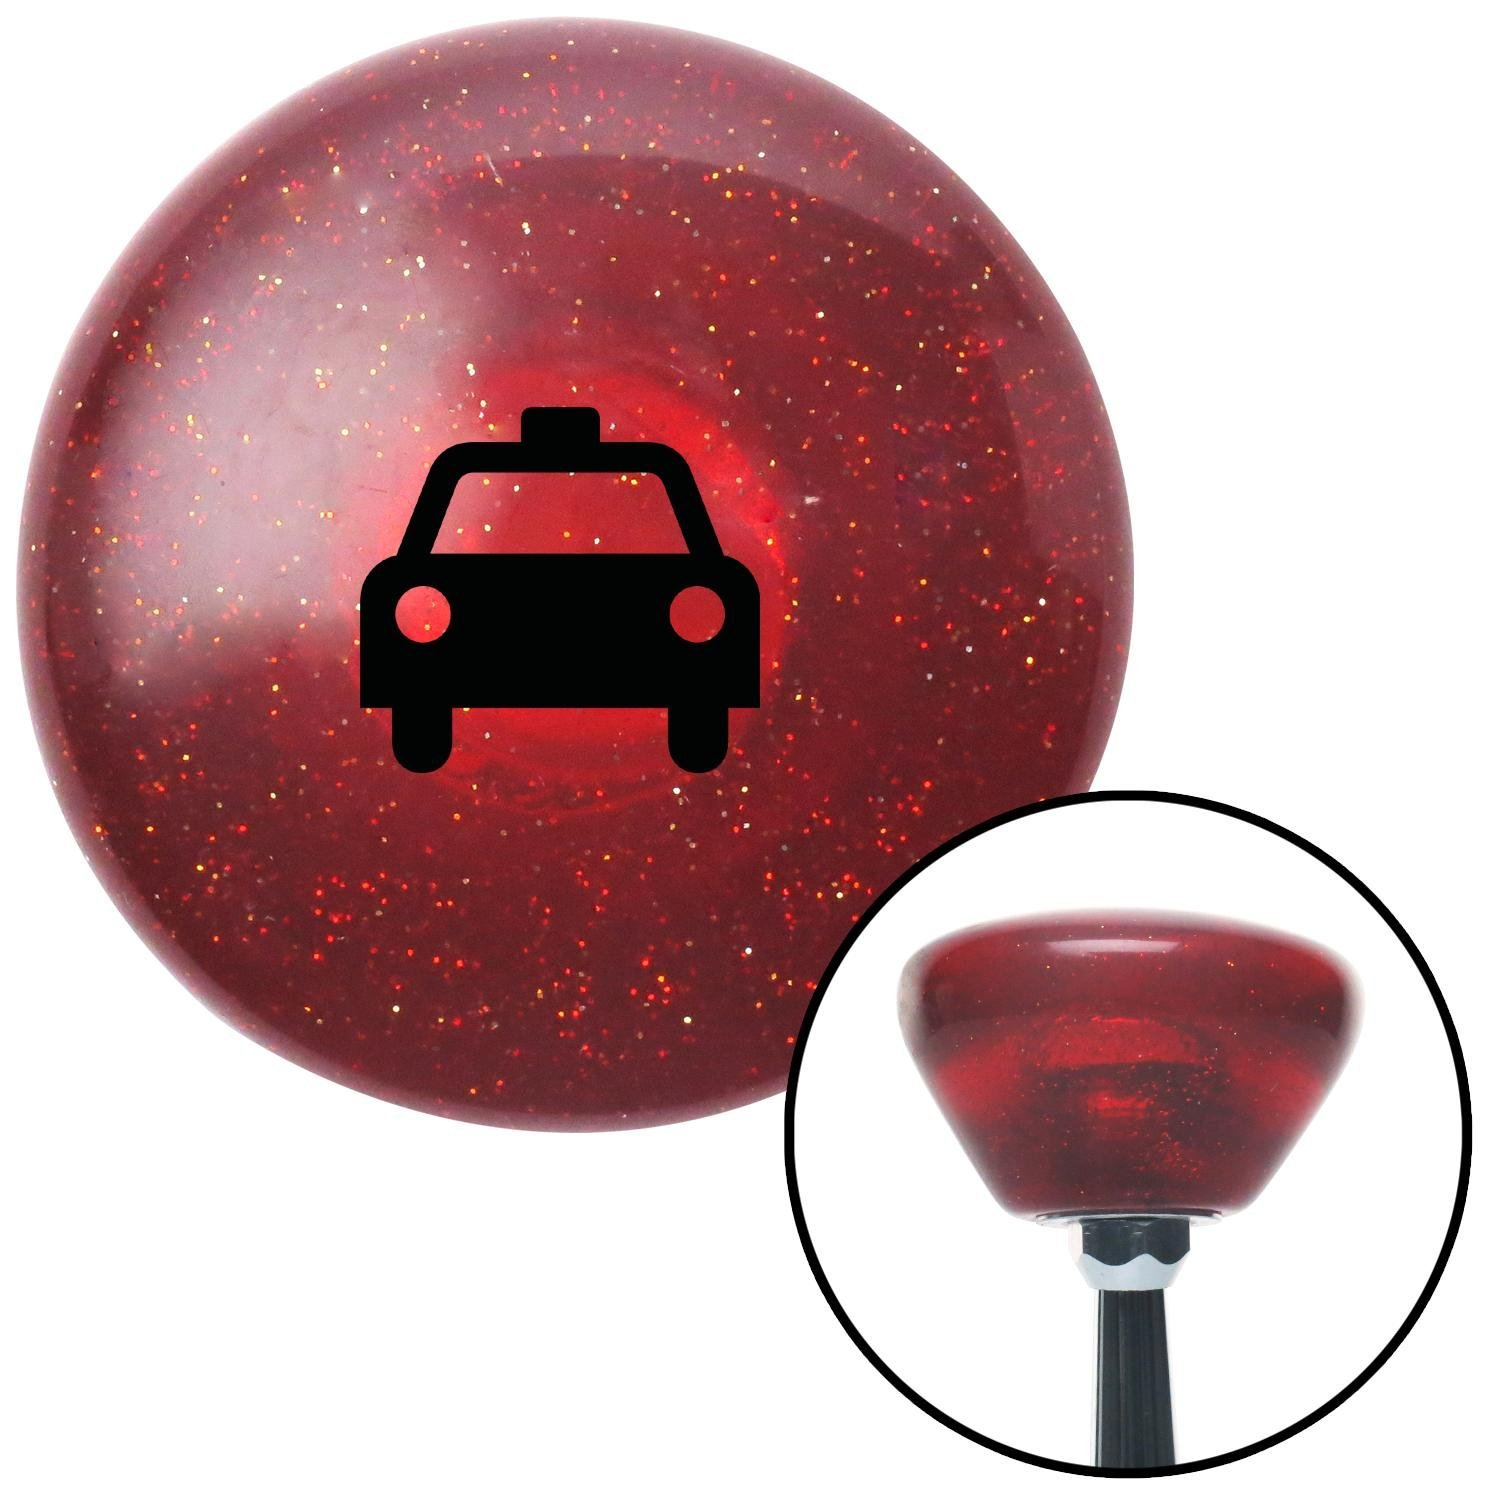 American Shifter 197582 Red Retro Metal Flake Shift Knob with M16 x 1.5 Insert Black Taxi